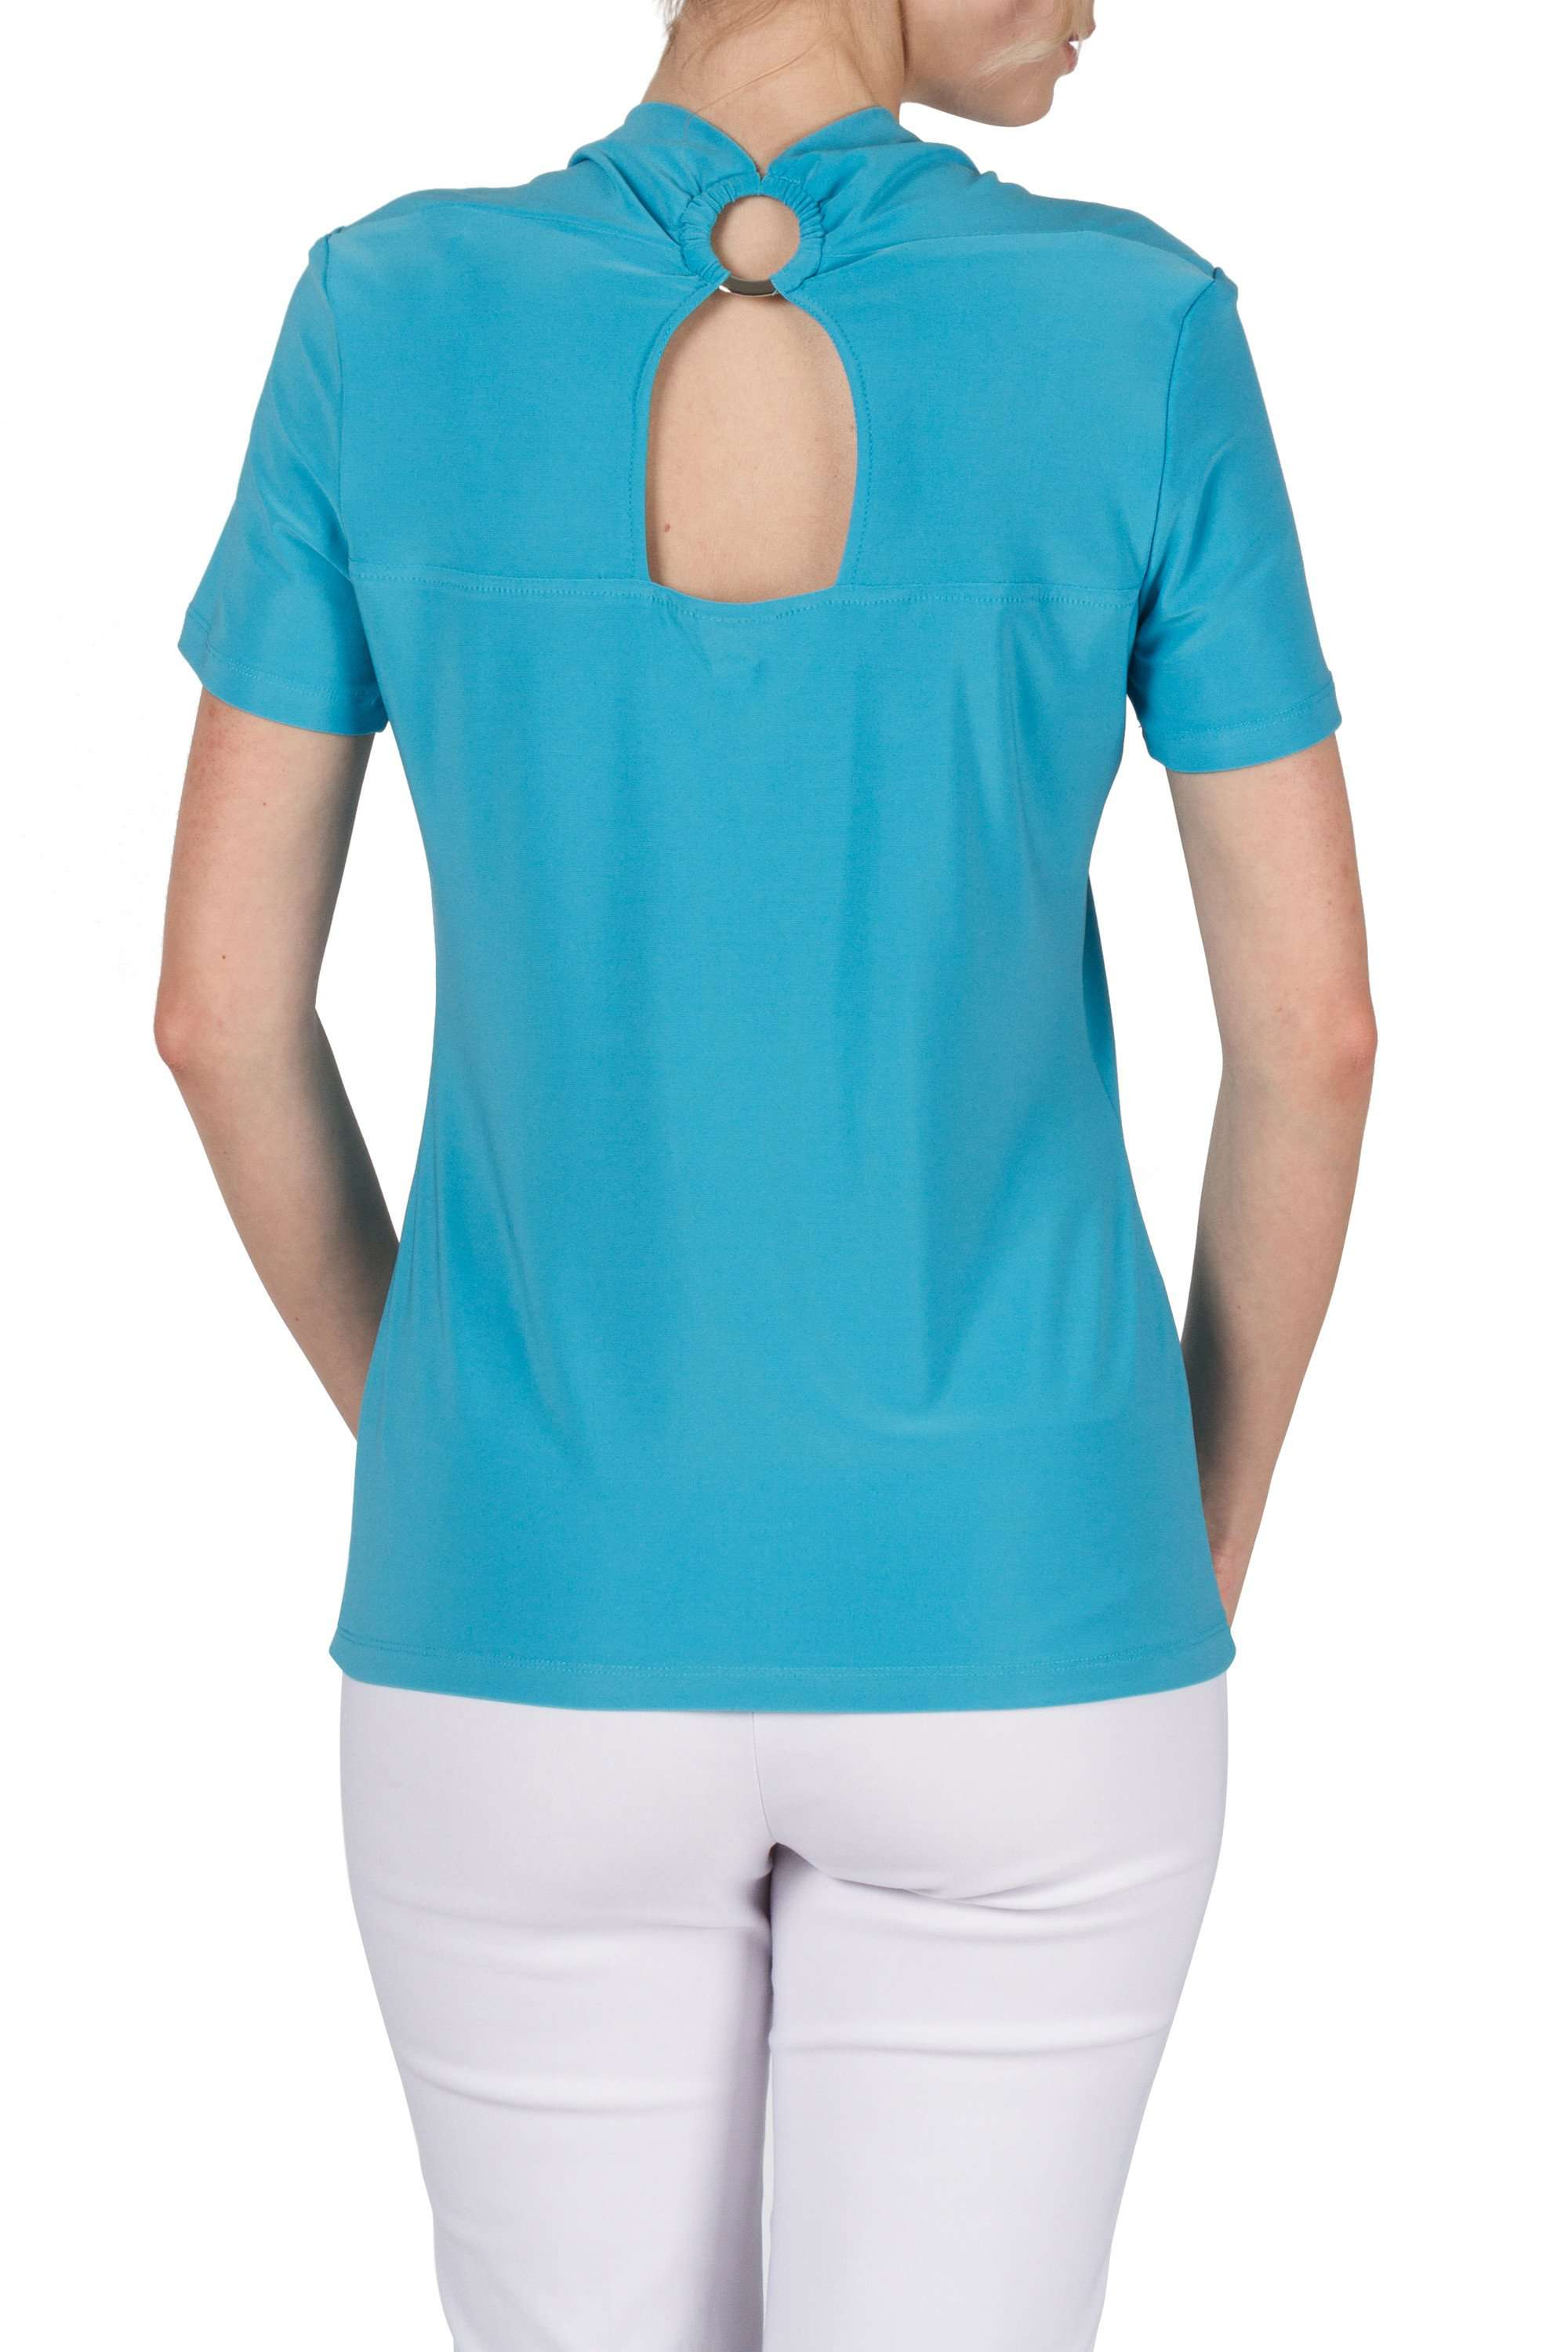 Top Turquoise Sweetheart Neckline - Yvonne Marie